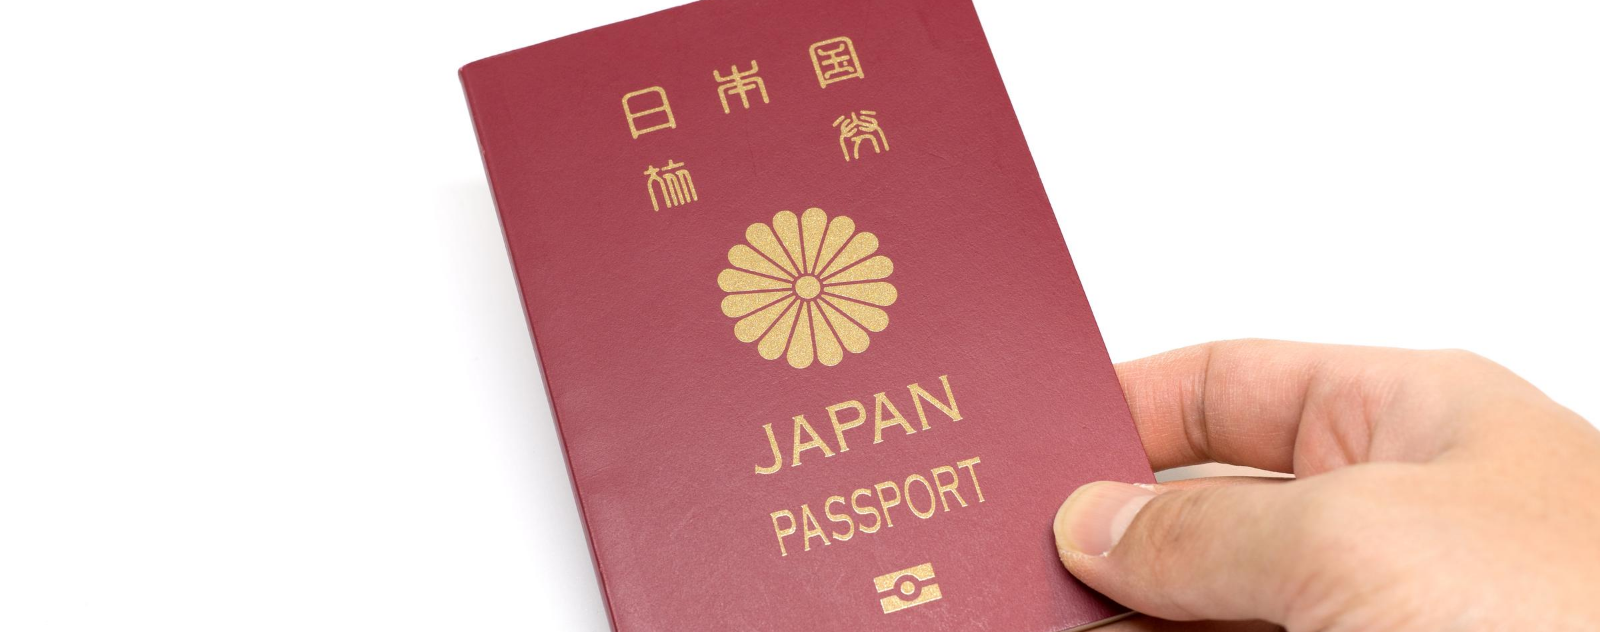 passport japonais